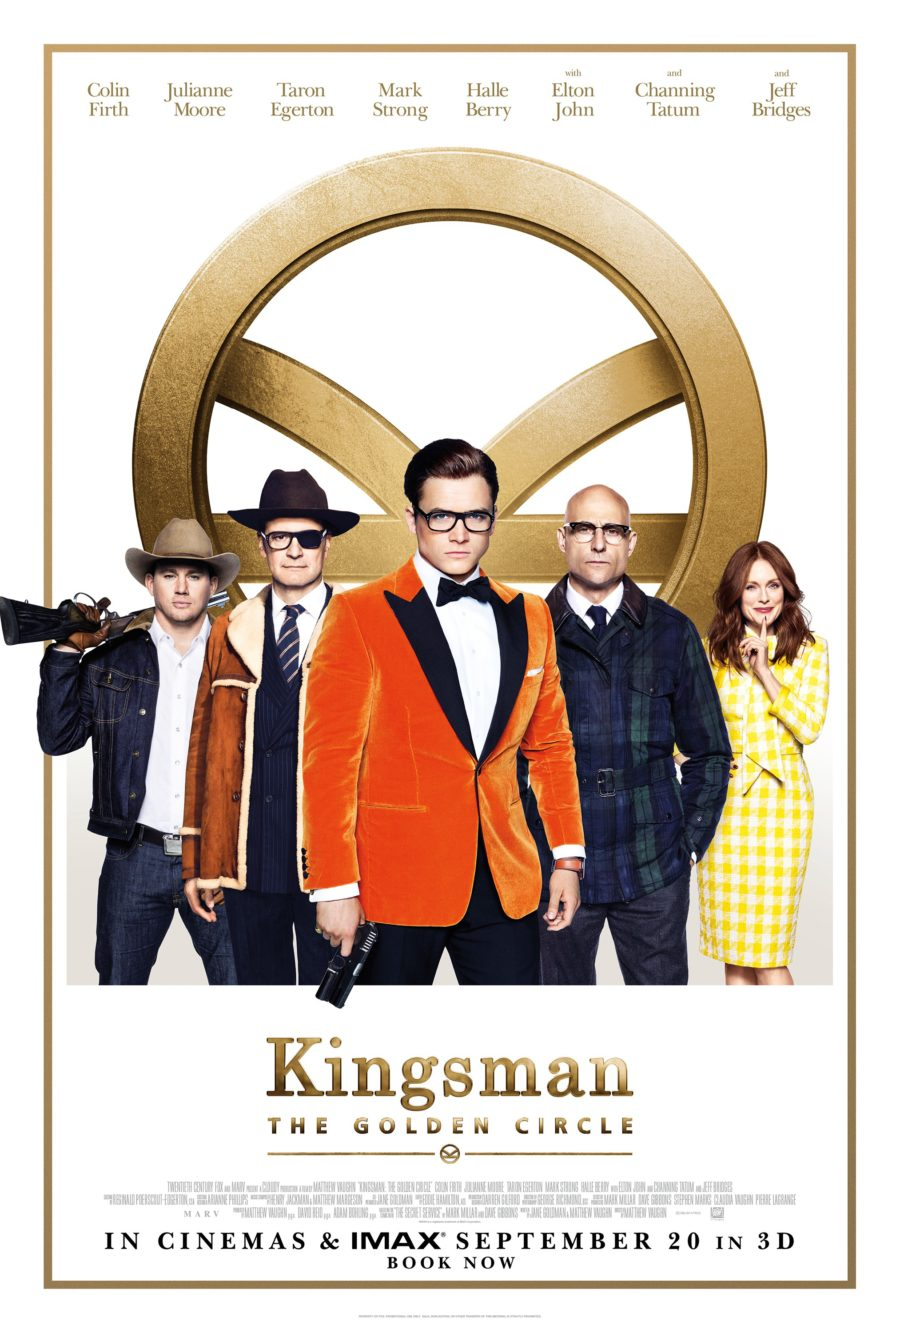 Kingsman-The-Golden-Circle-Launch-One-Sheet-e1502973371405.jpg